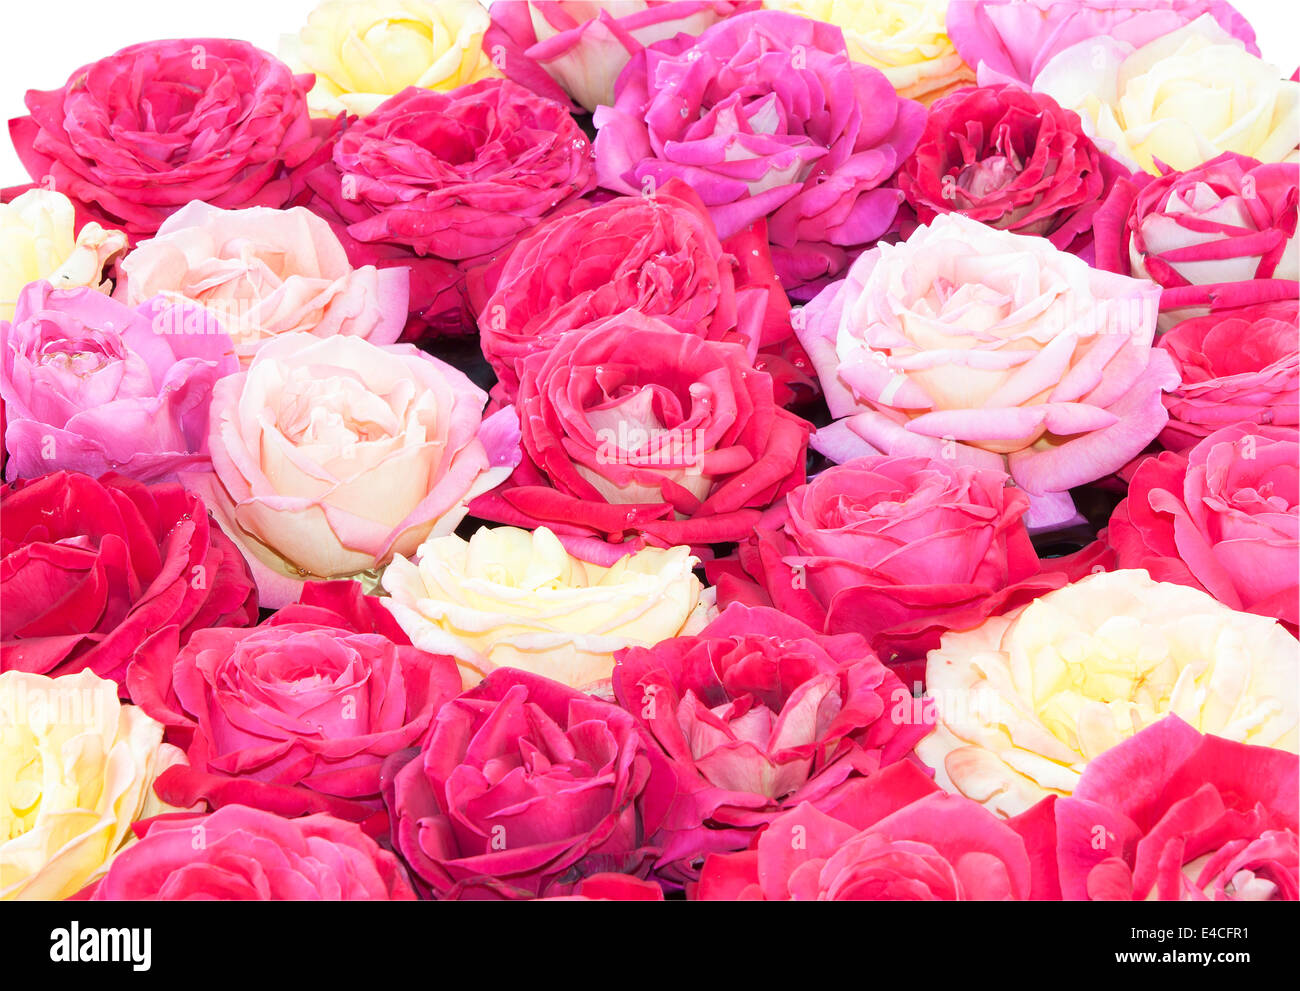 Background of pink roses represent love, I love you. - Stock Image